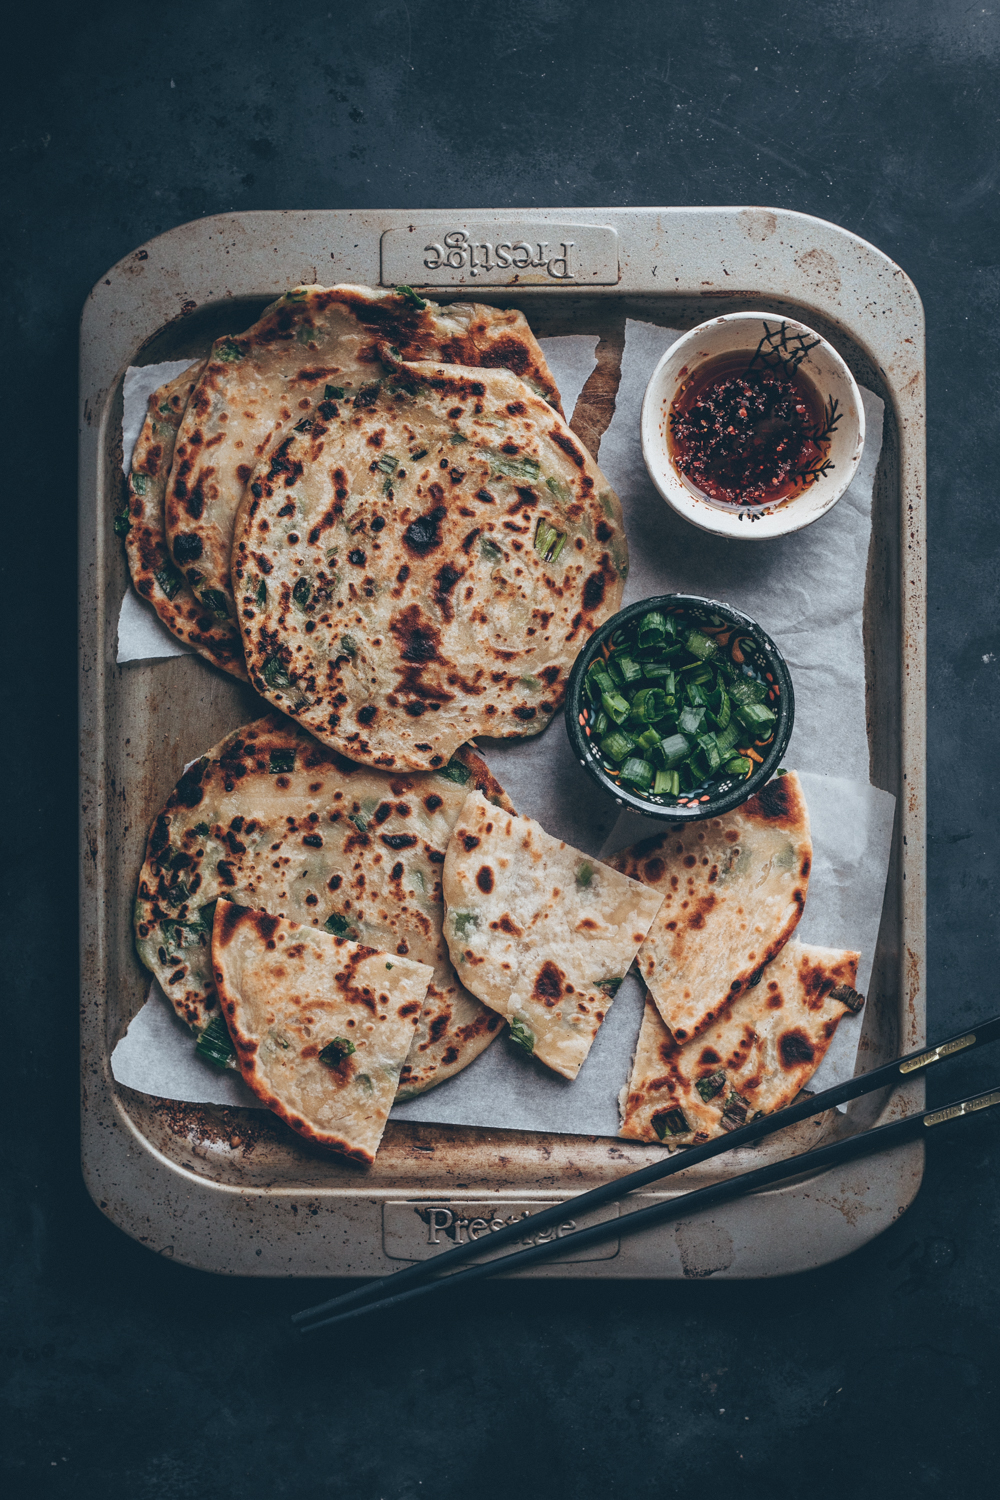 Chinese Scallion Pancakes (Cong You Bing) or also known as Chinese Spring Onion Pancakes - A Vegan Recipe by Kati of black.white.vivid. - food photography, food styling, moody food photography, Chinese recipe, Chinese cuisine, Vegan Chinese recipe